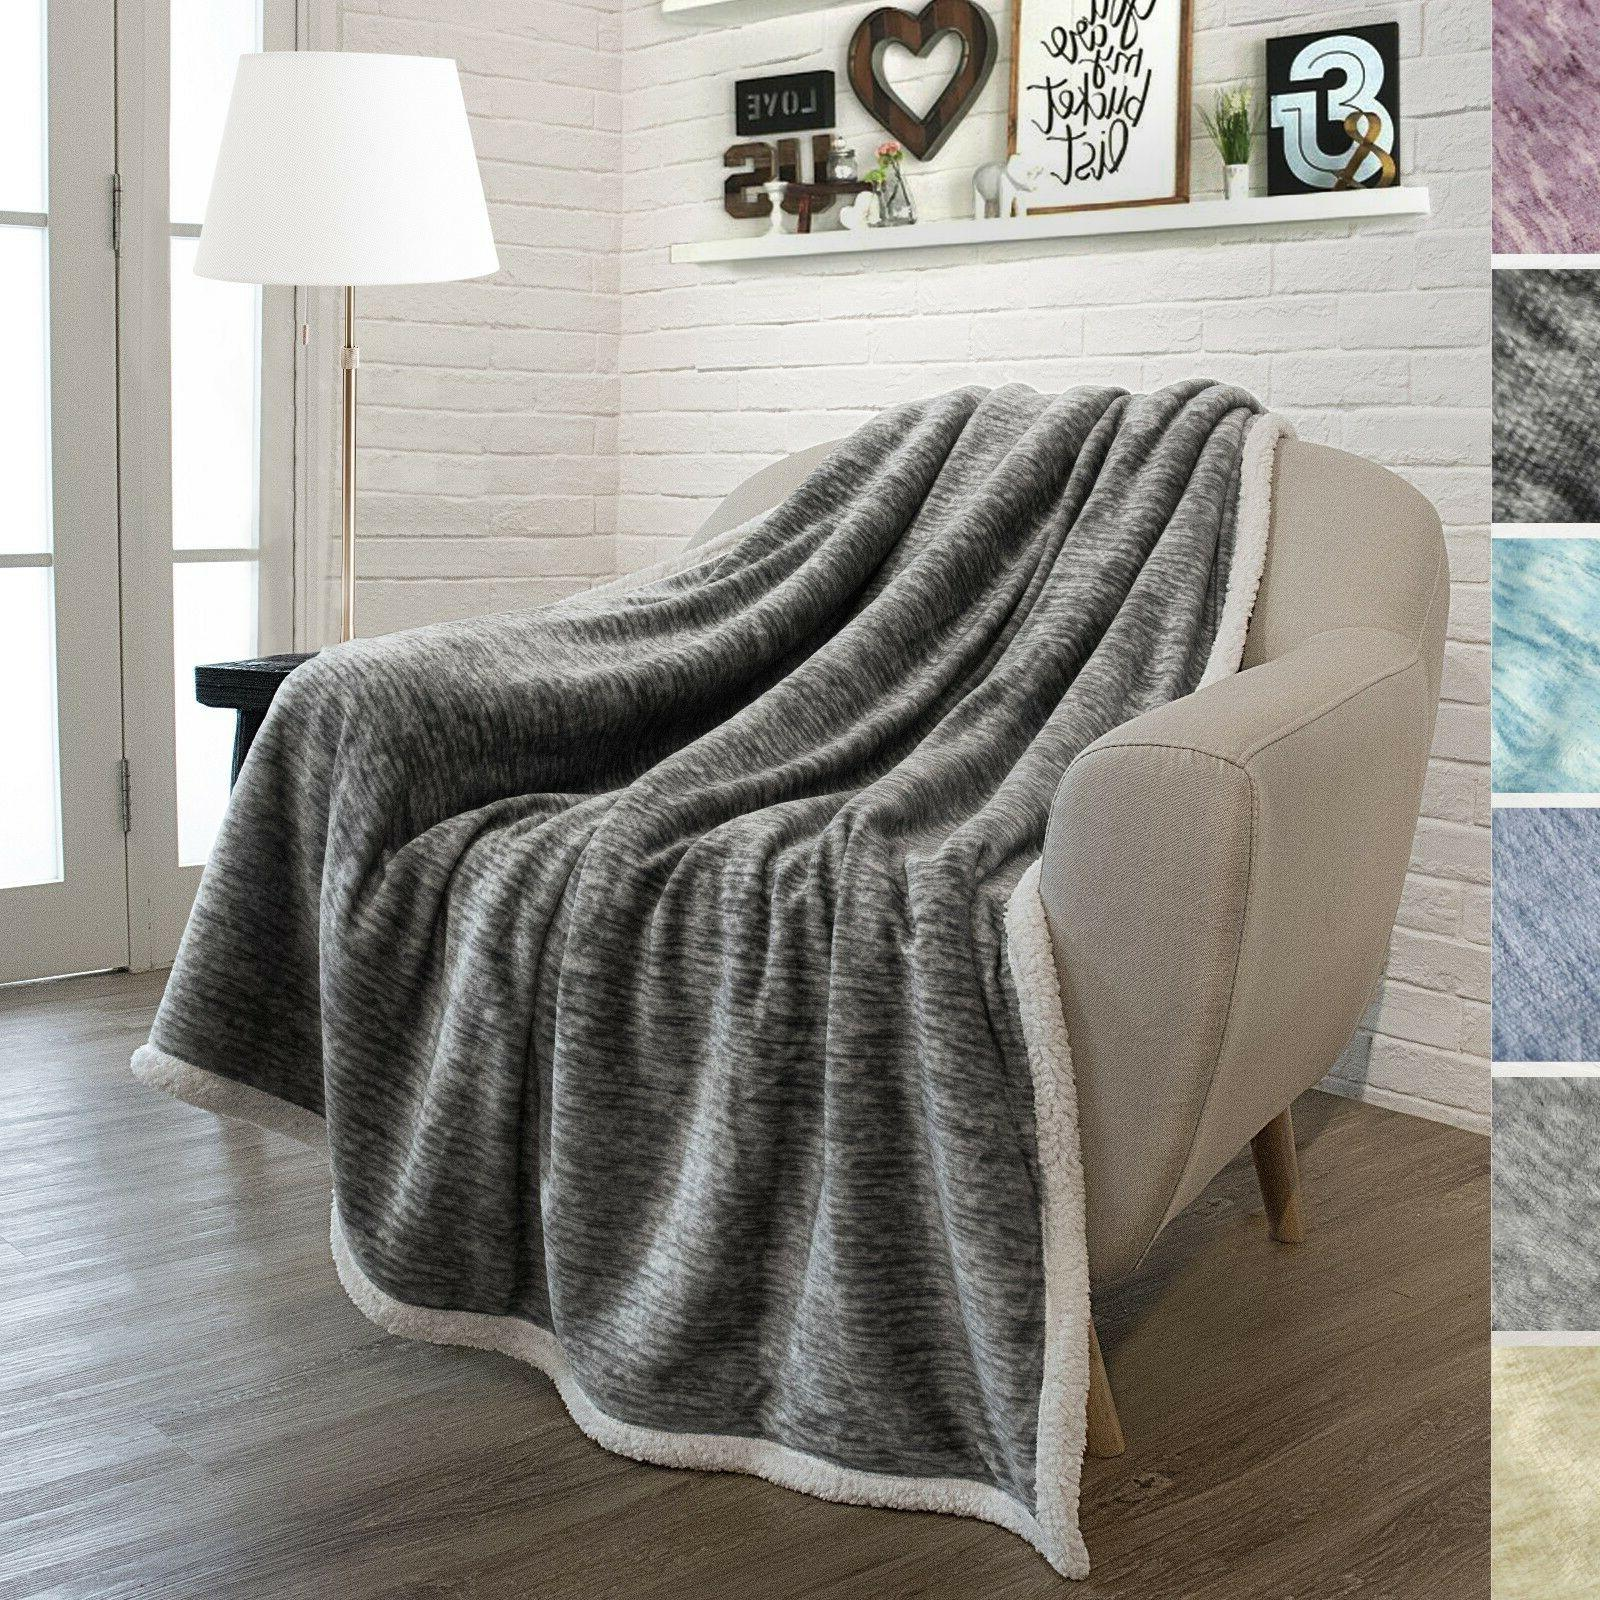 Sherpa Blanket Couch Sofa Twin Reversible Microfiber